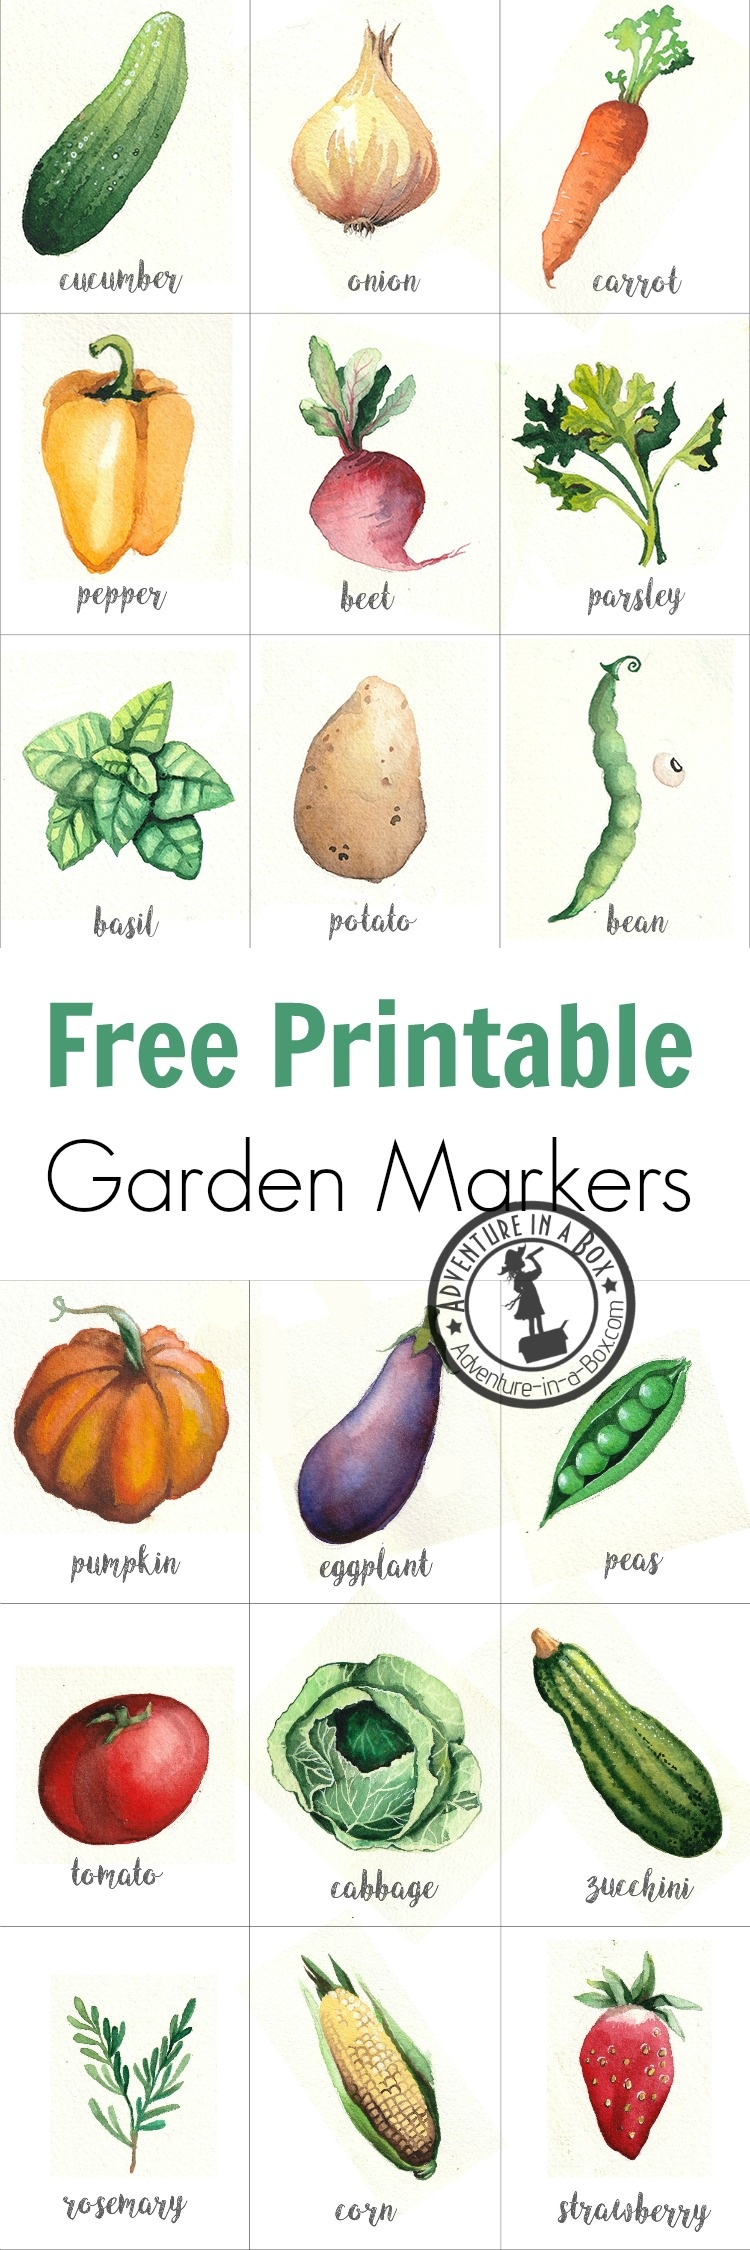 Free Printable Watercolour Garden Markers | Adventure In A Box - Free Printable Plant Labels